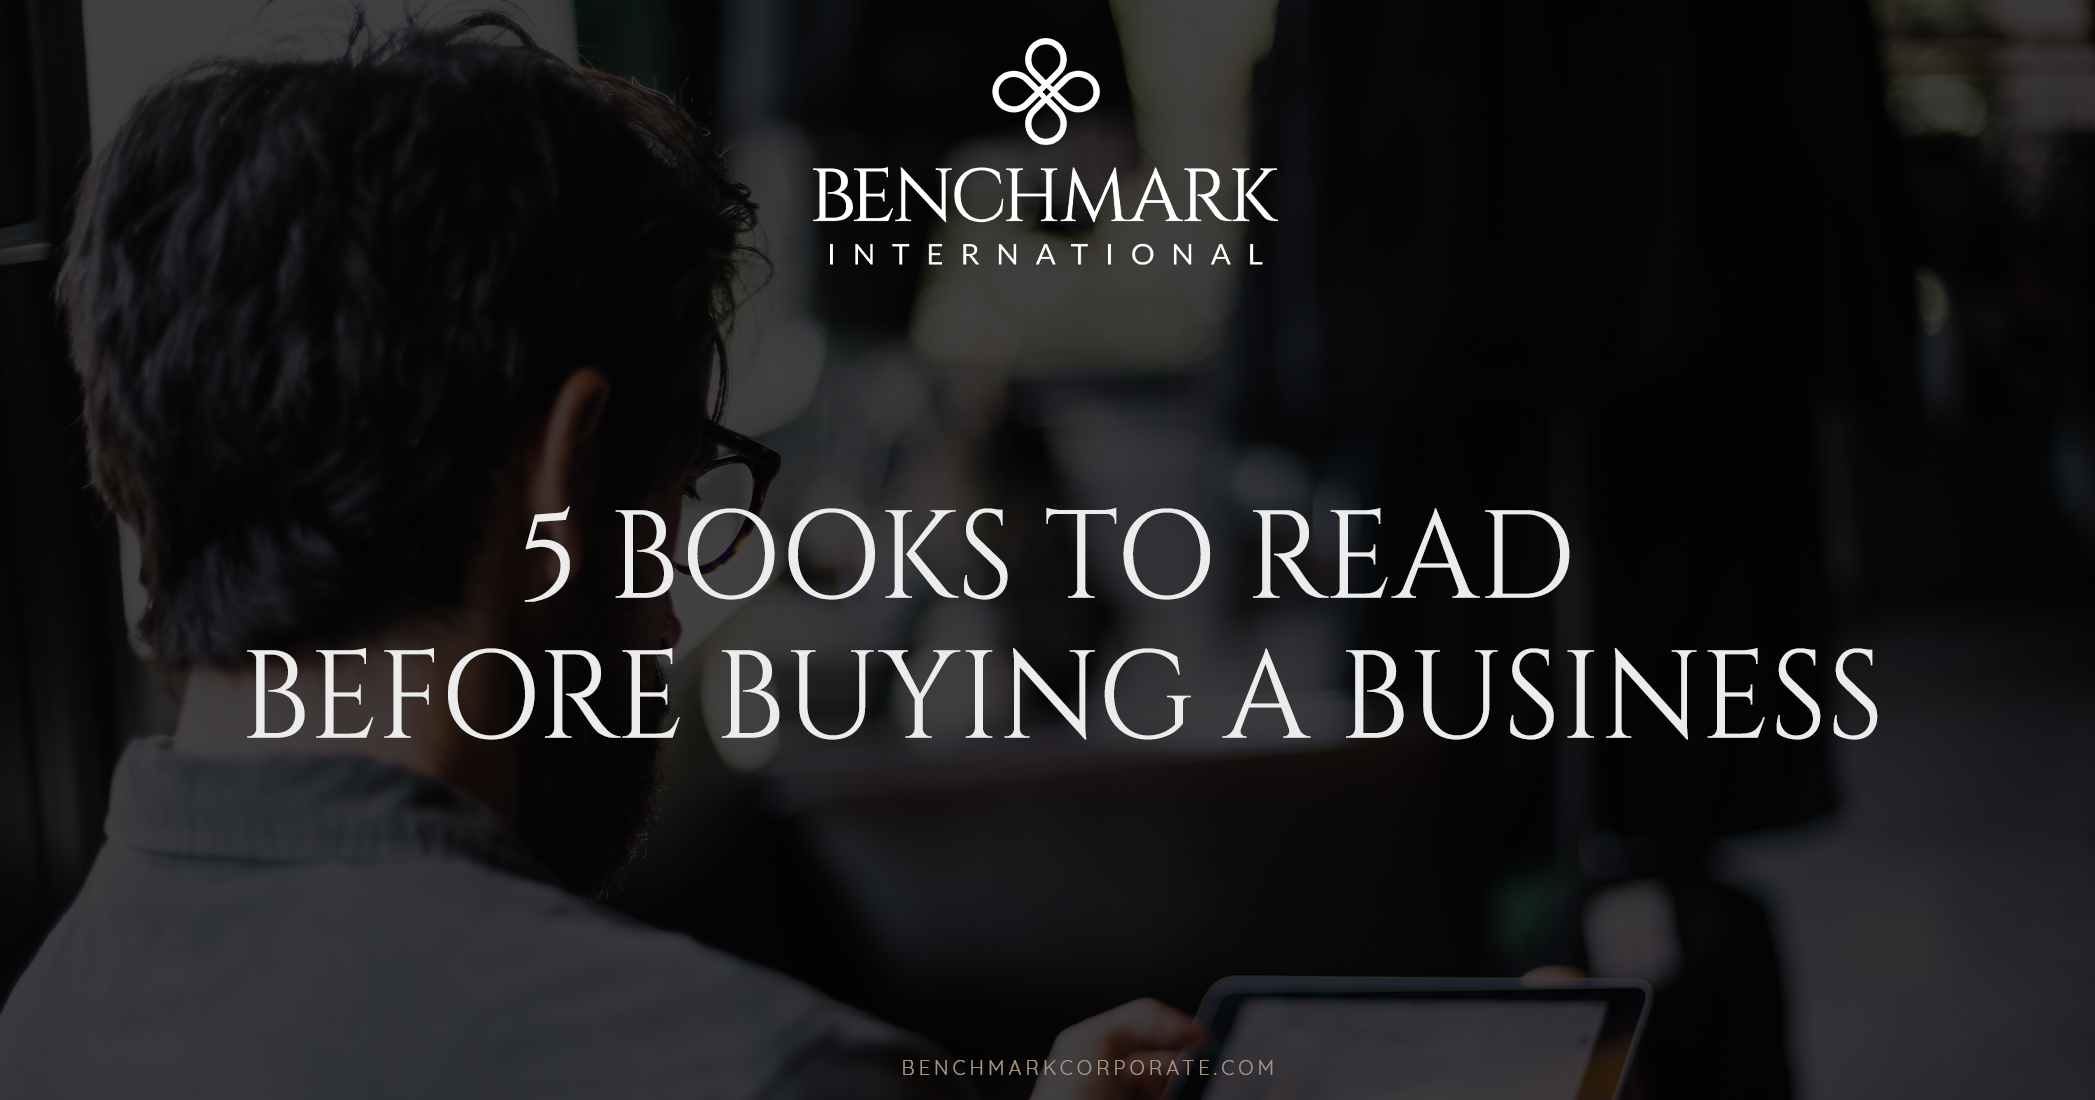 5 Books to Read Before Buying a Business